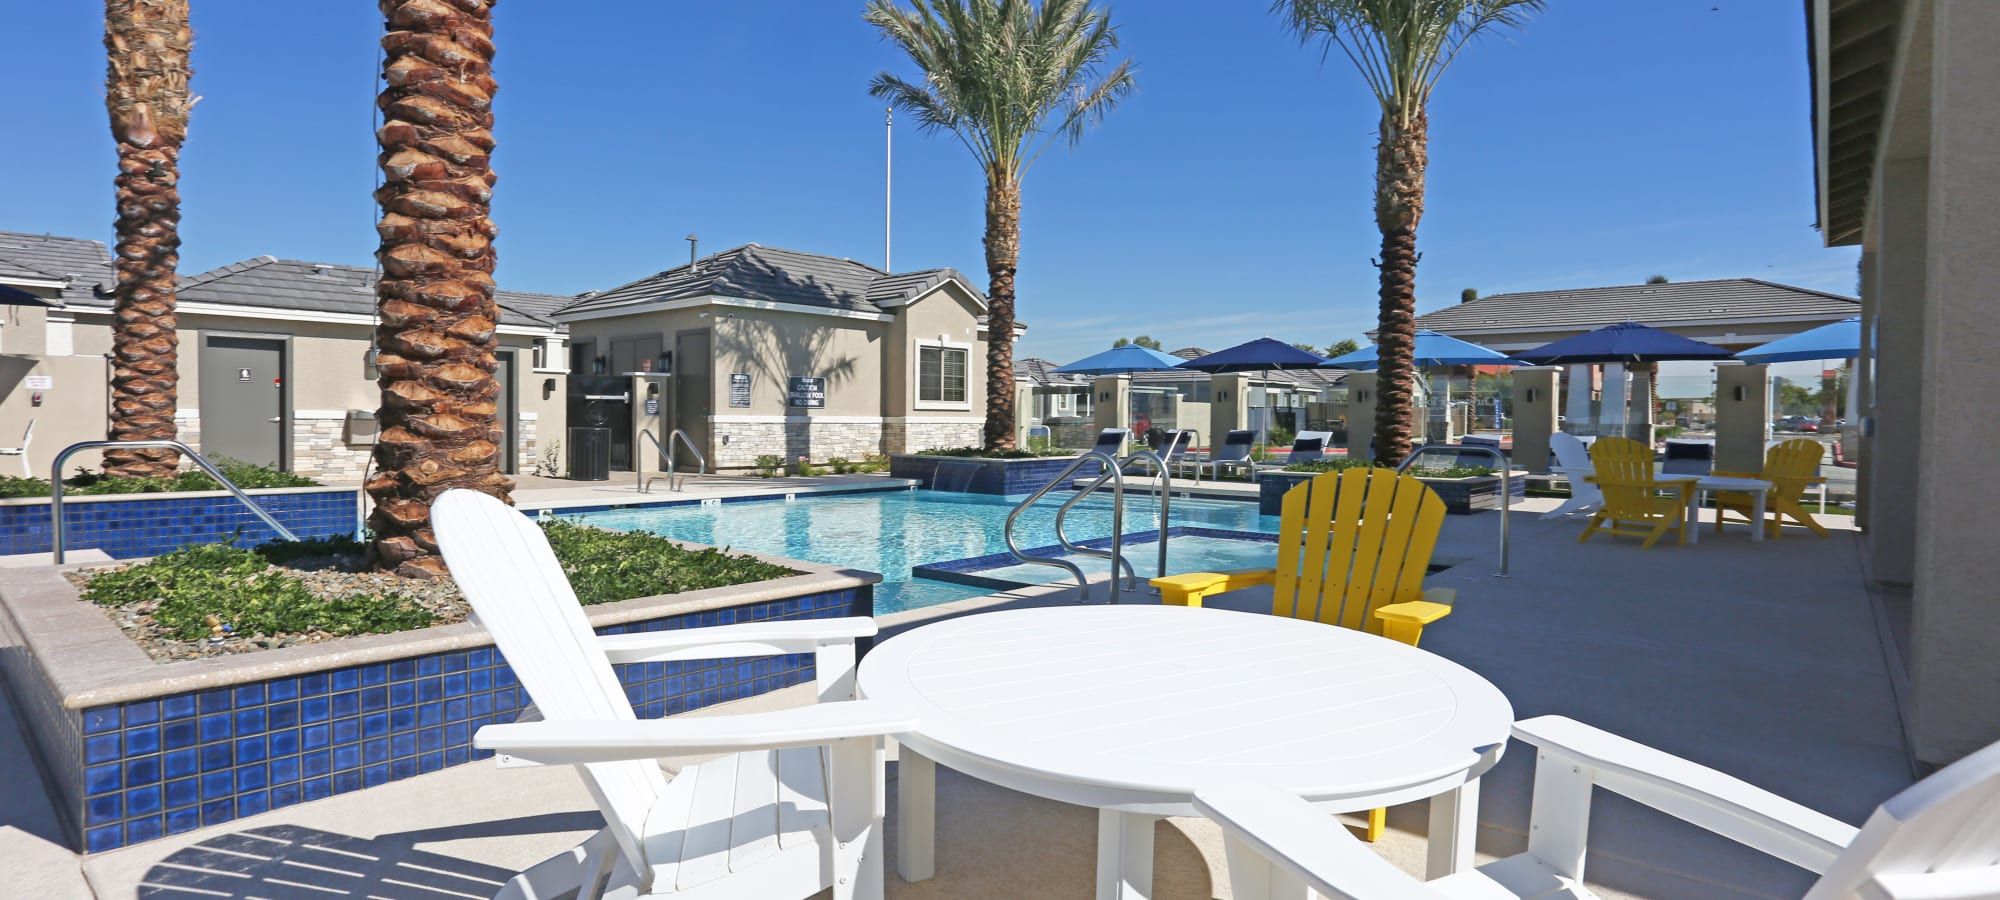 Comfortable seating near the pool at Christopher Todd Communities on Mountain View in Surprise, Arizona